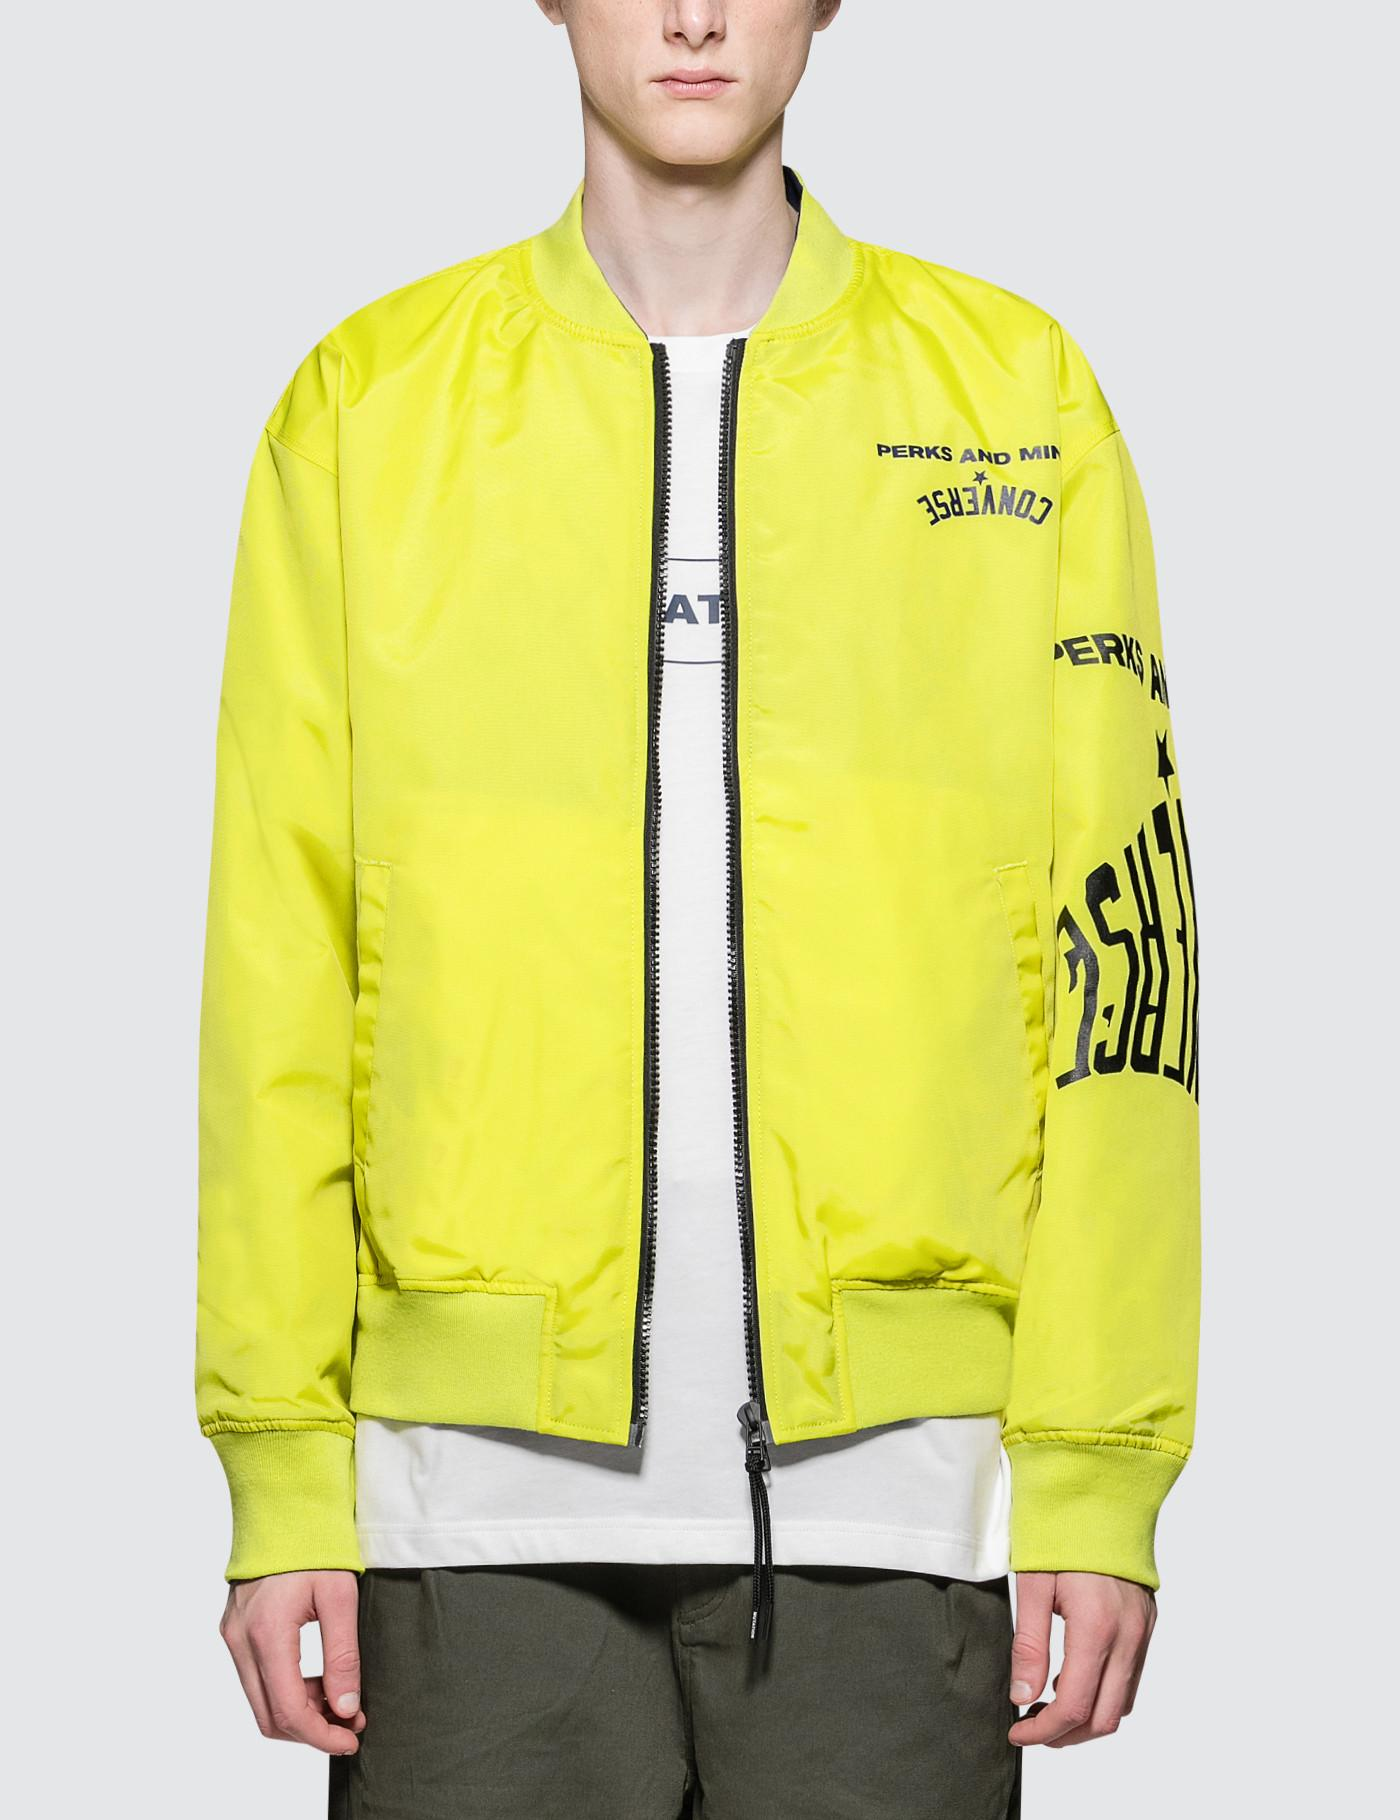 755cdc04d46 Lyst - Converse X P.a.m. Bomber Jacket in Green for Men